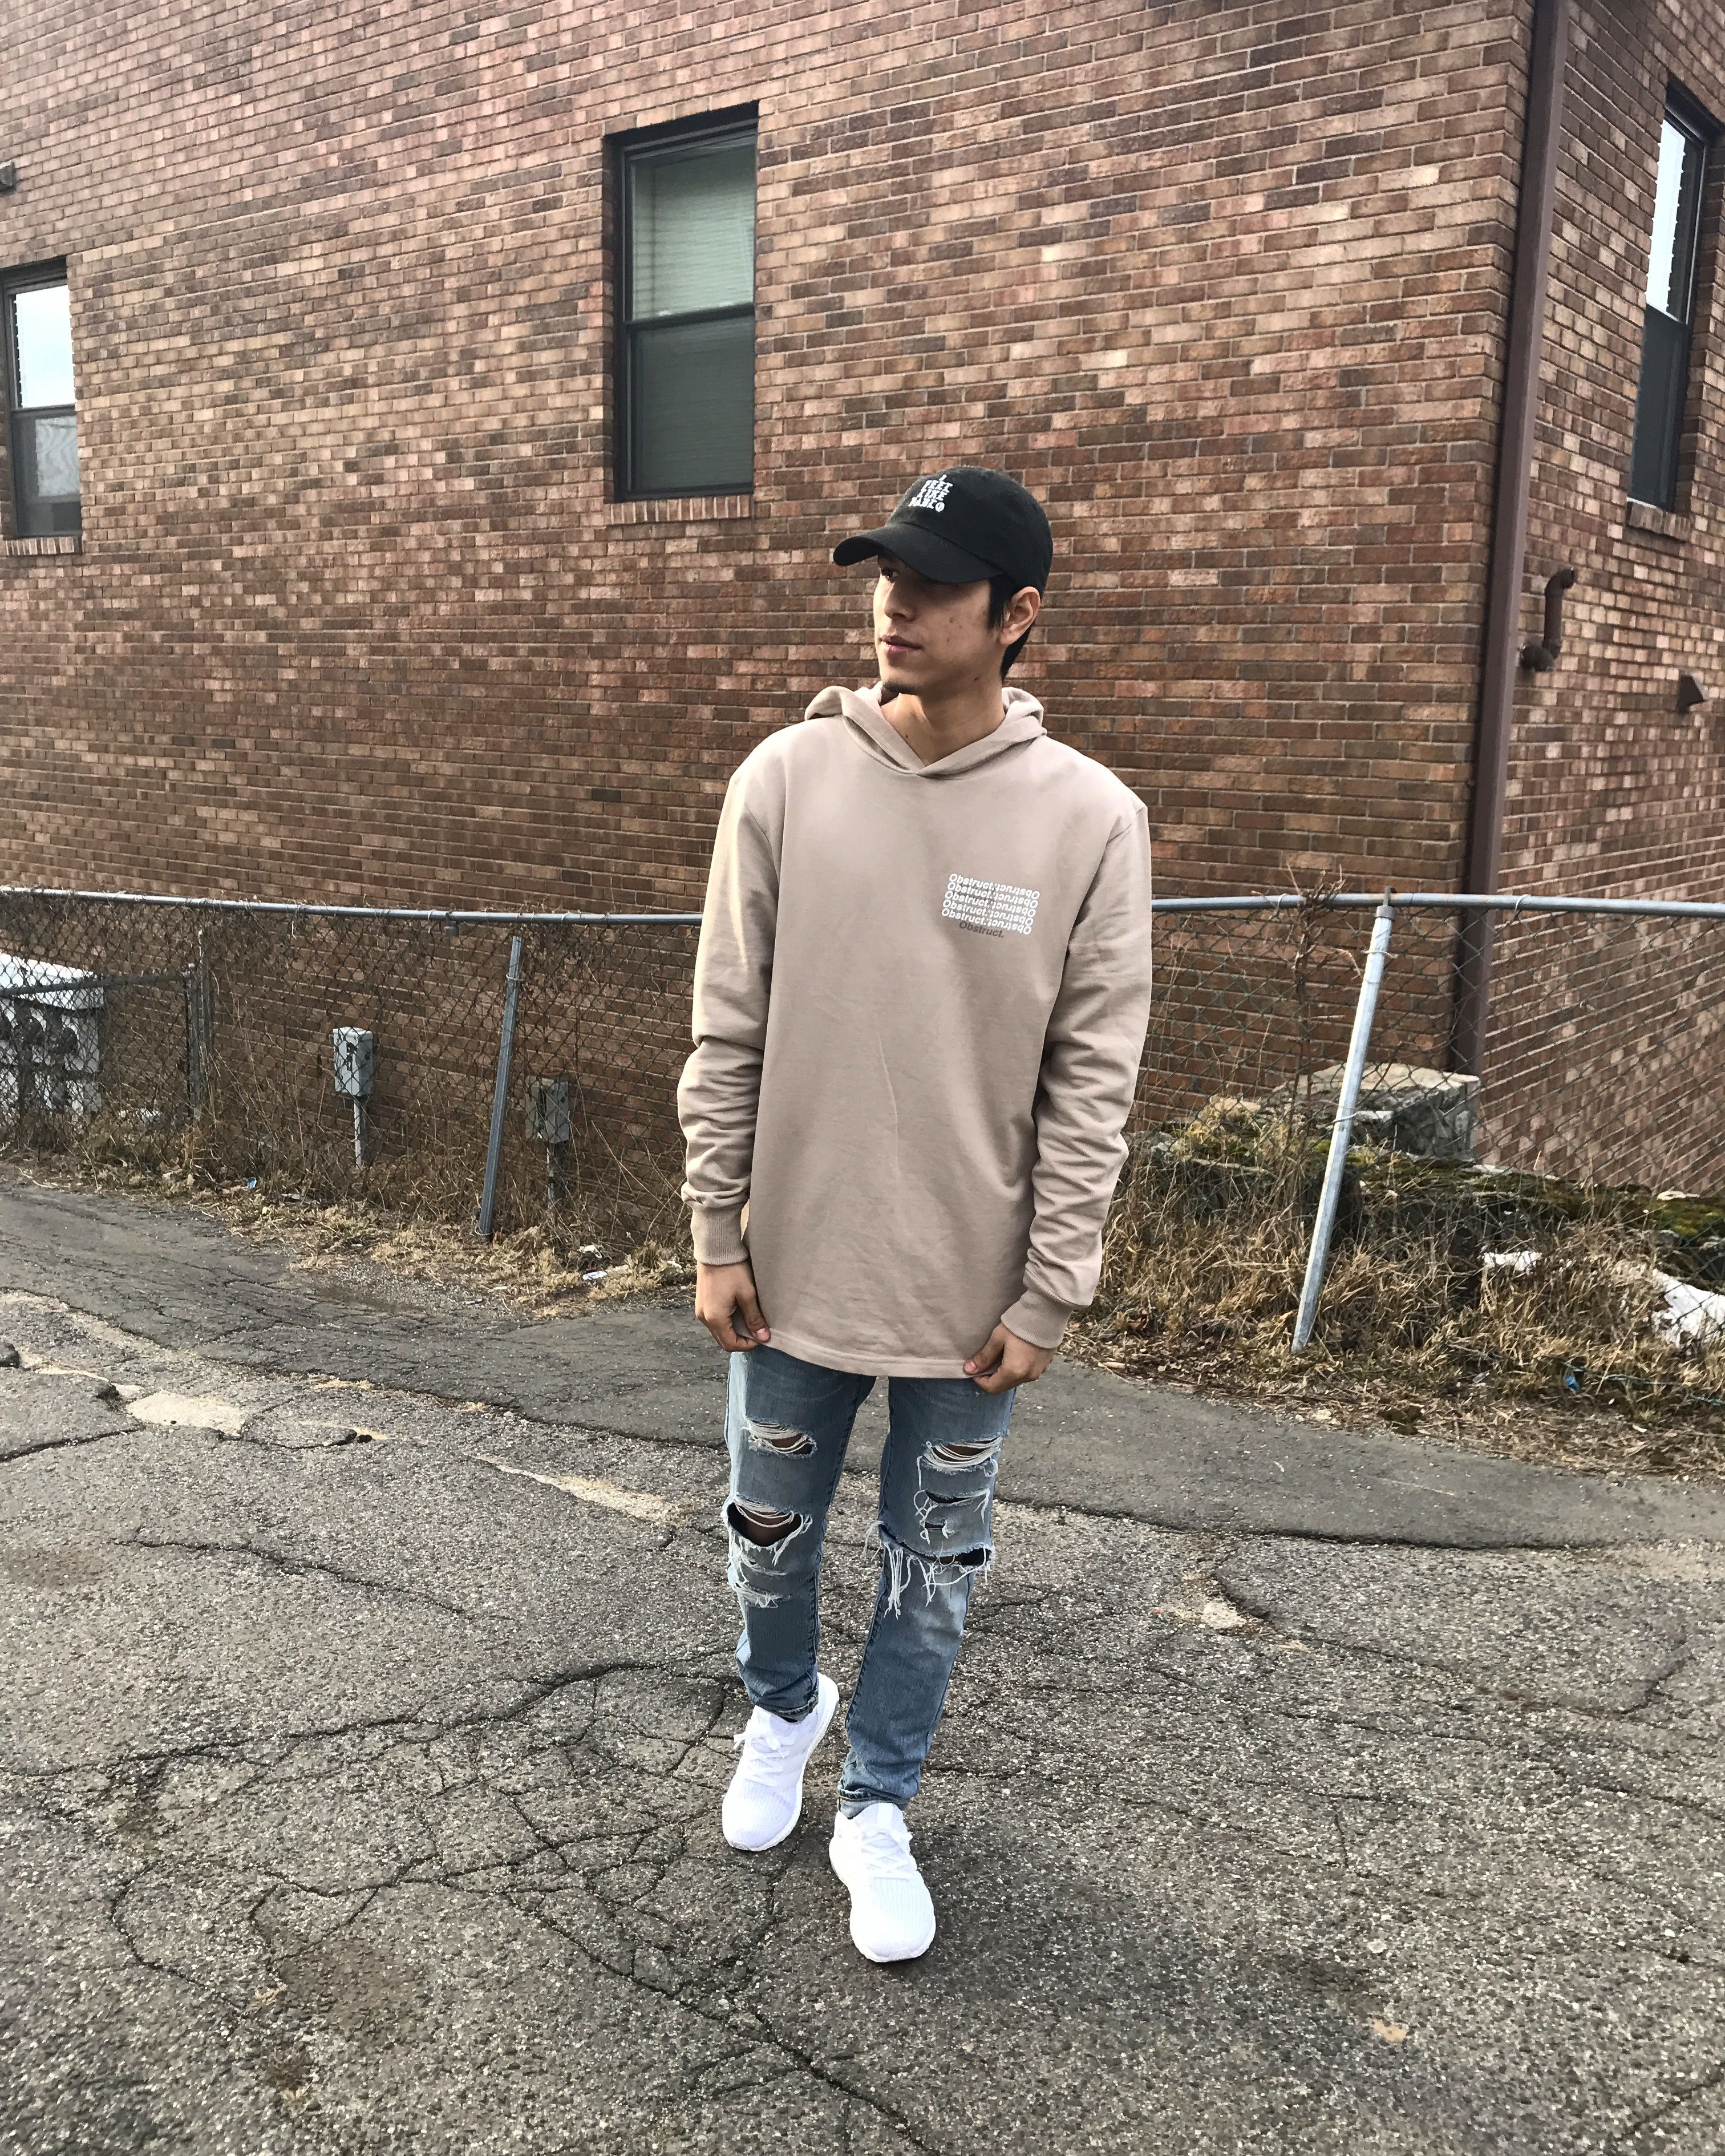 Basic Street Wear | Fashion | Pinterest